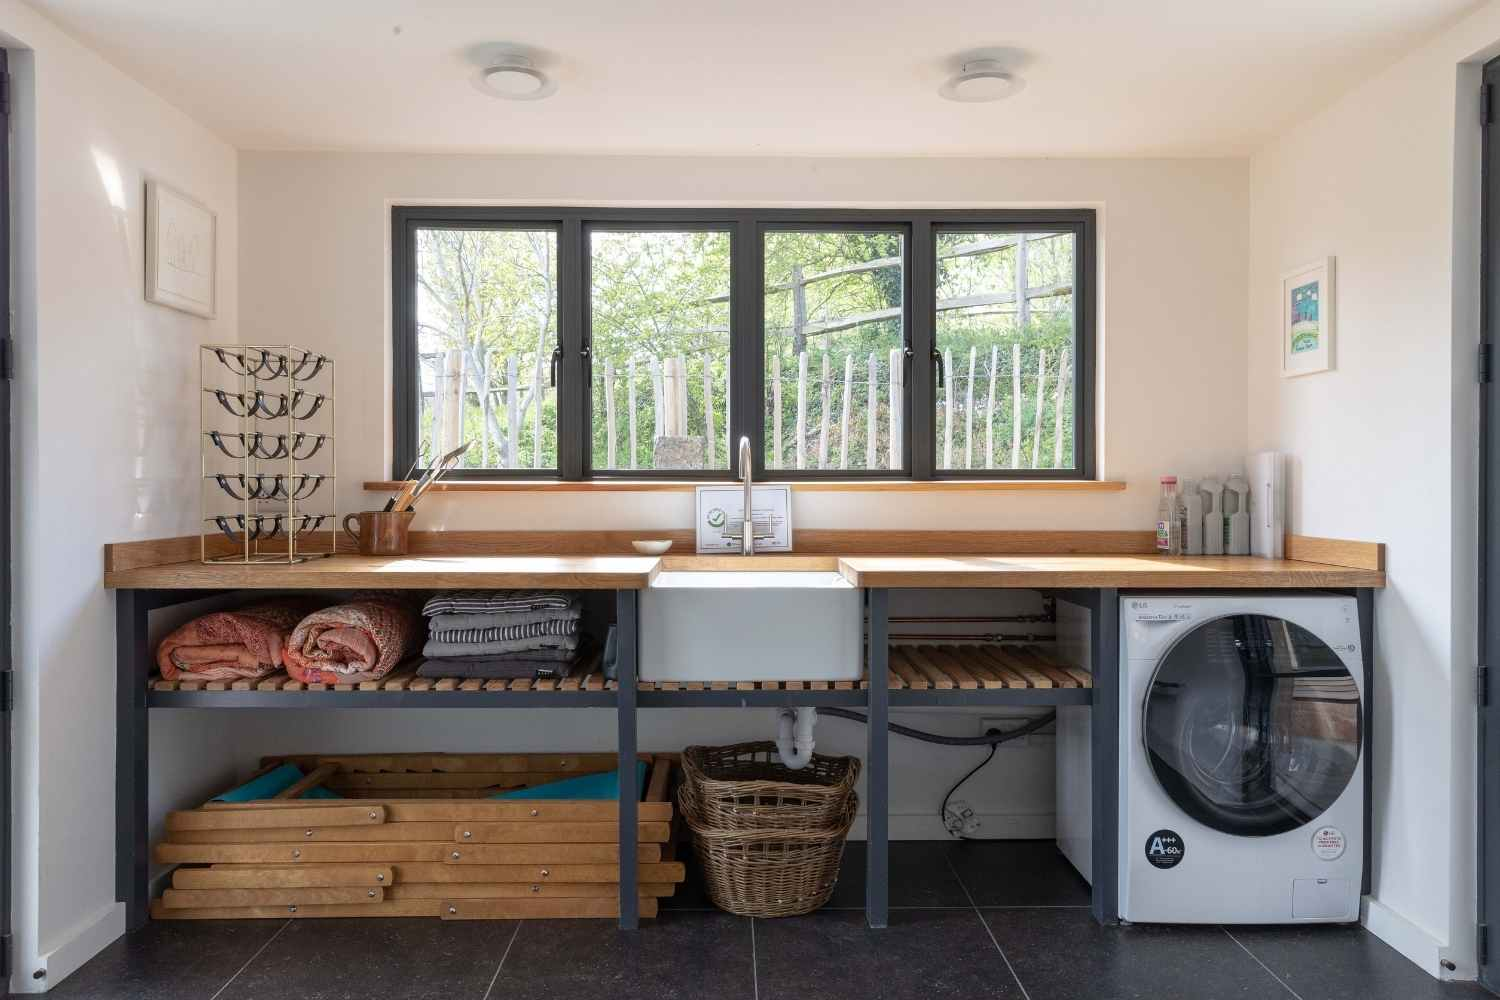 Utility room with everything you need for your stay